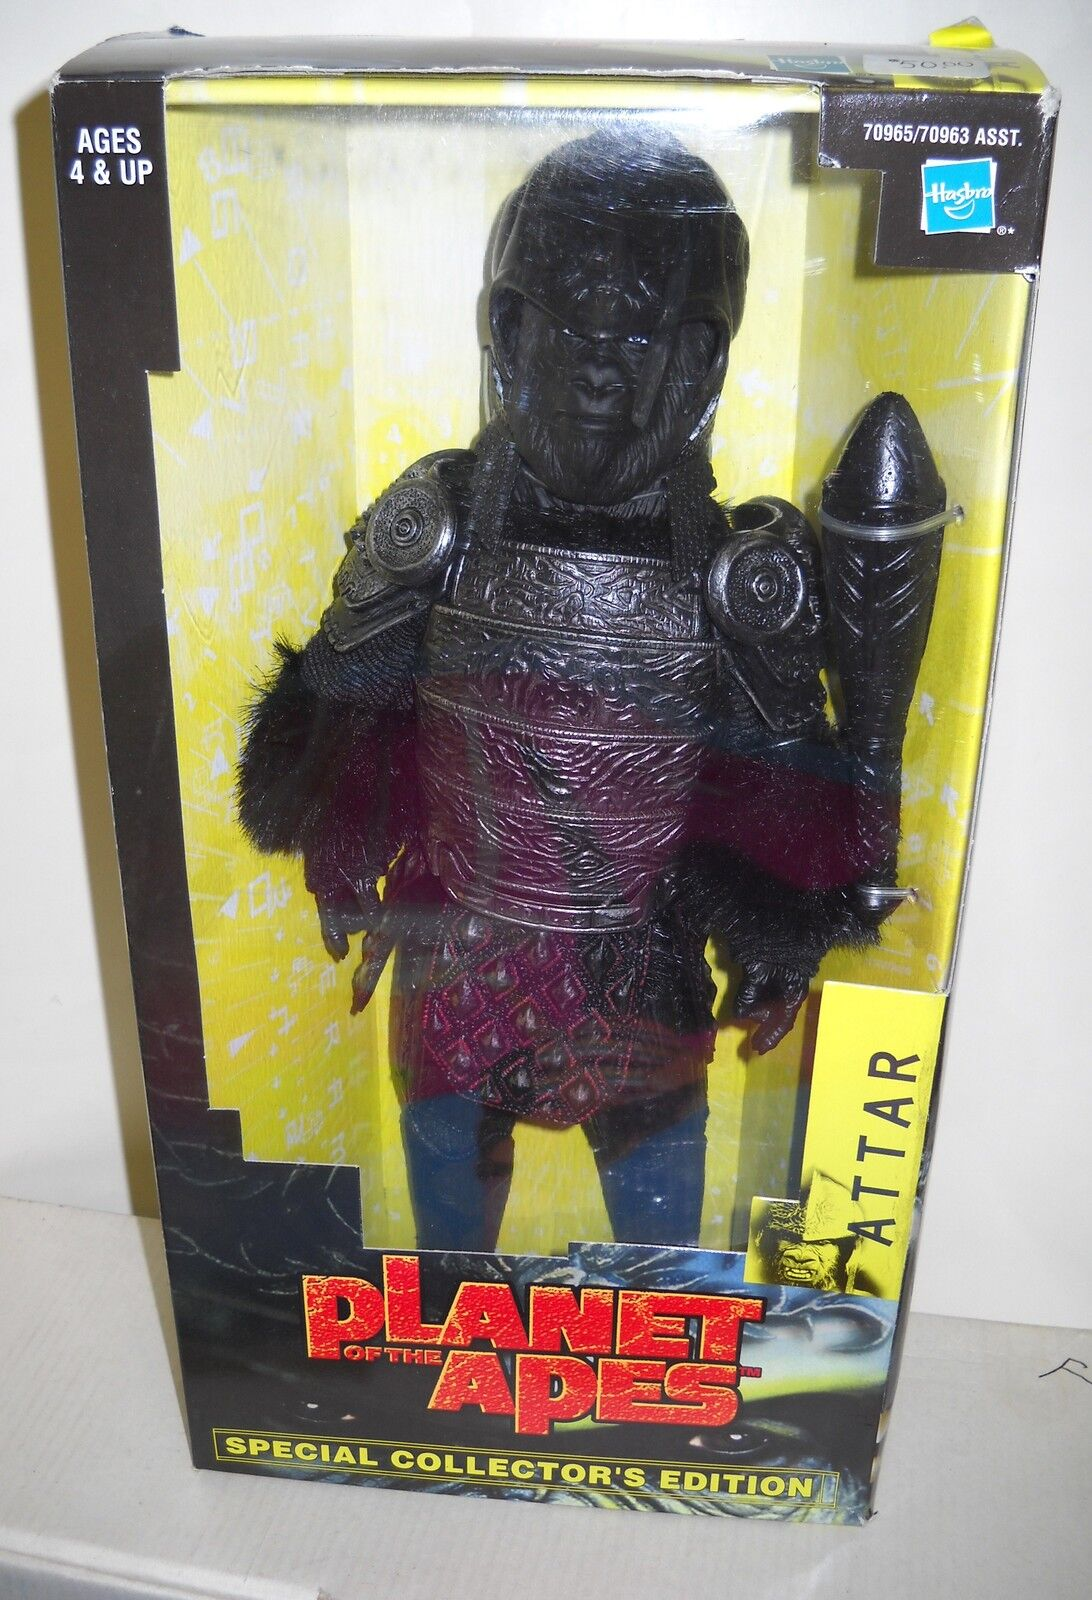 NRFB Hasbro Planet of the Apes Movie Attar Special Collector's Edition